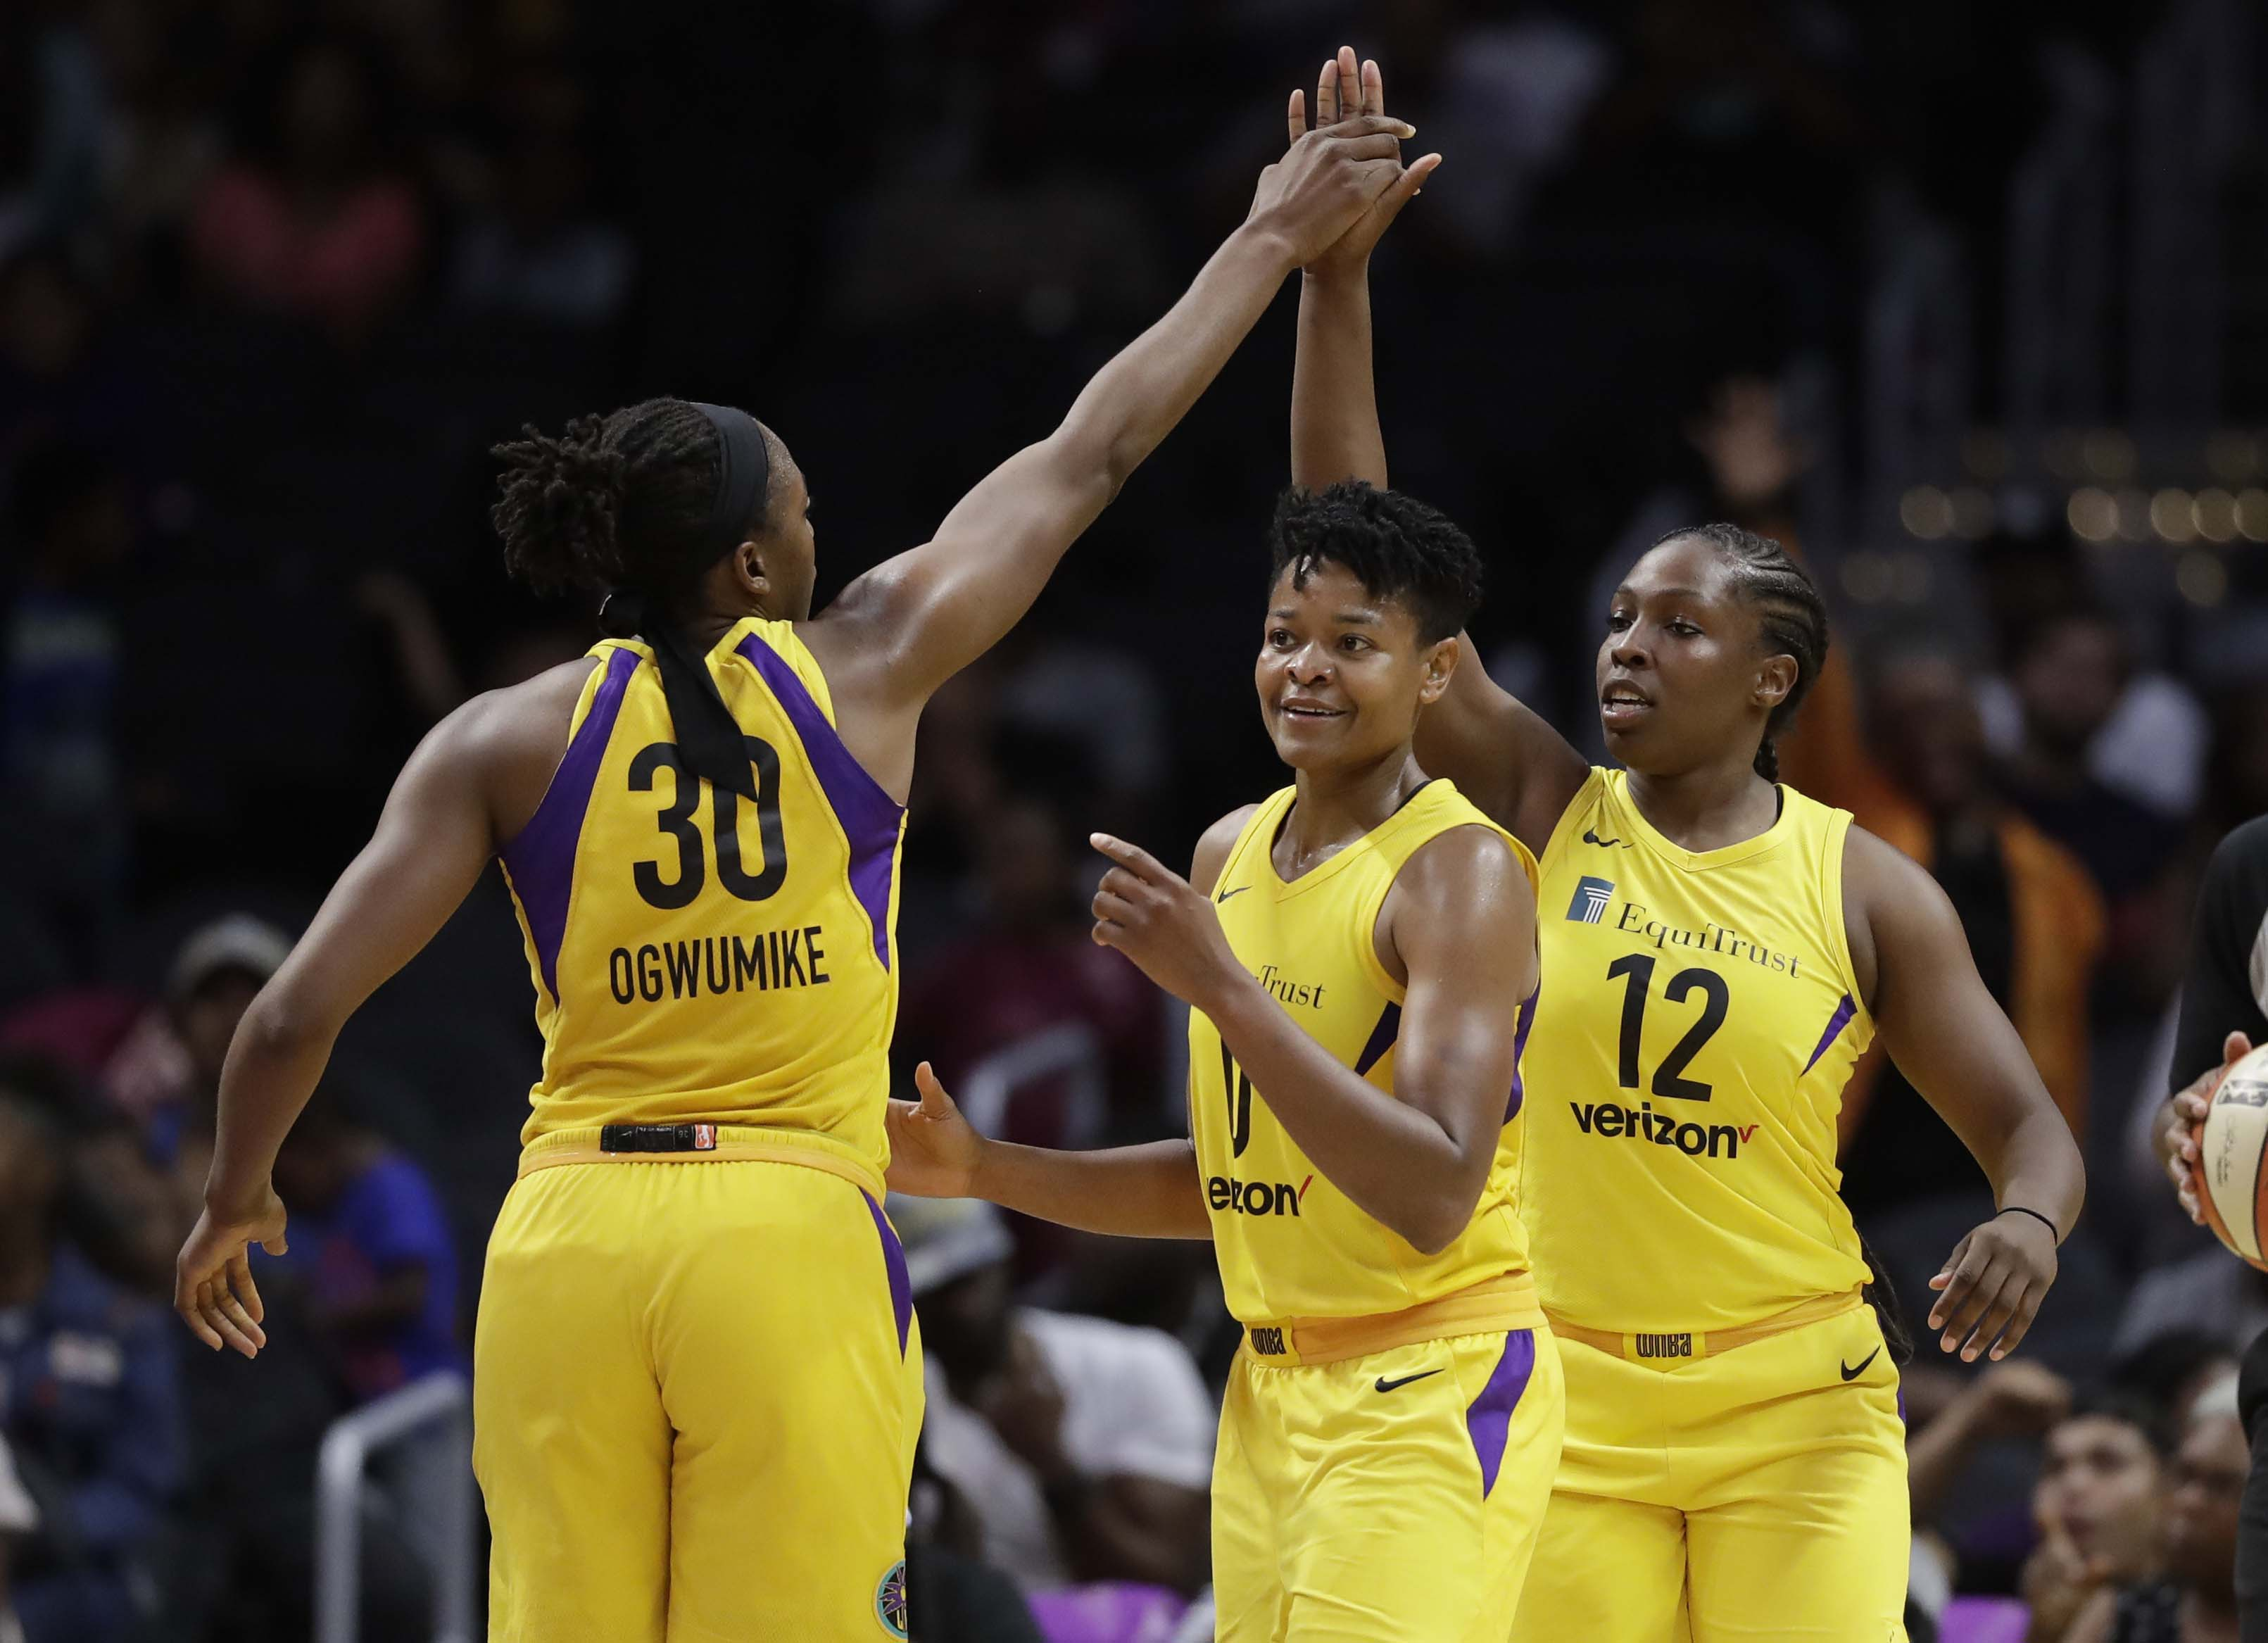 Los Angeles Sparks' Chelsea Gray (12) celebrates her basket with teammates Nneka Ogwumike (30) and Alana Beard during the second half of a WNBA basketball game against the New York Liberty in Los Angeles on Tuesday.